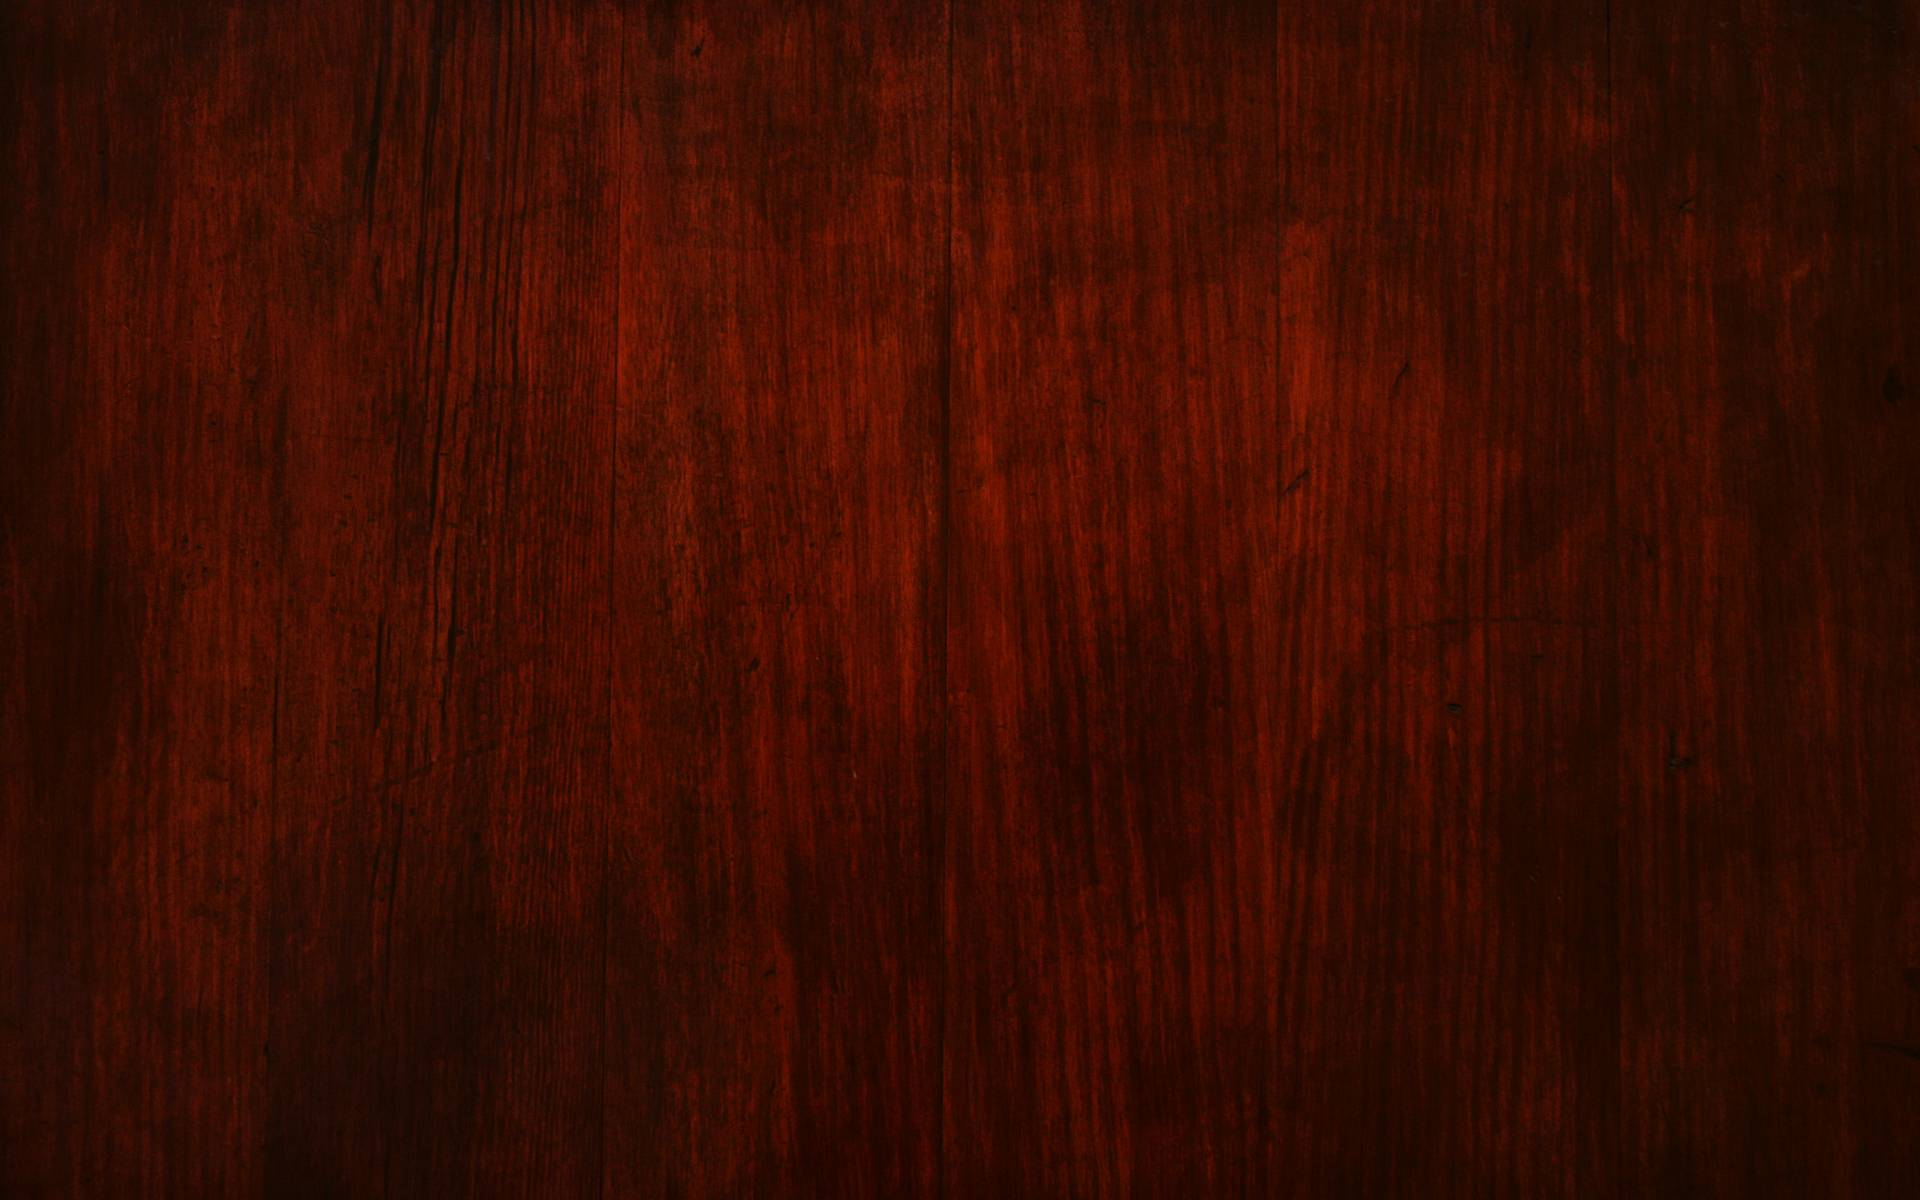 Wood Backgrounds (14 Wallpapers) – Adorable Wallpapers